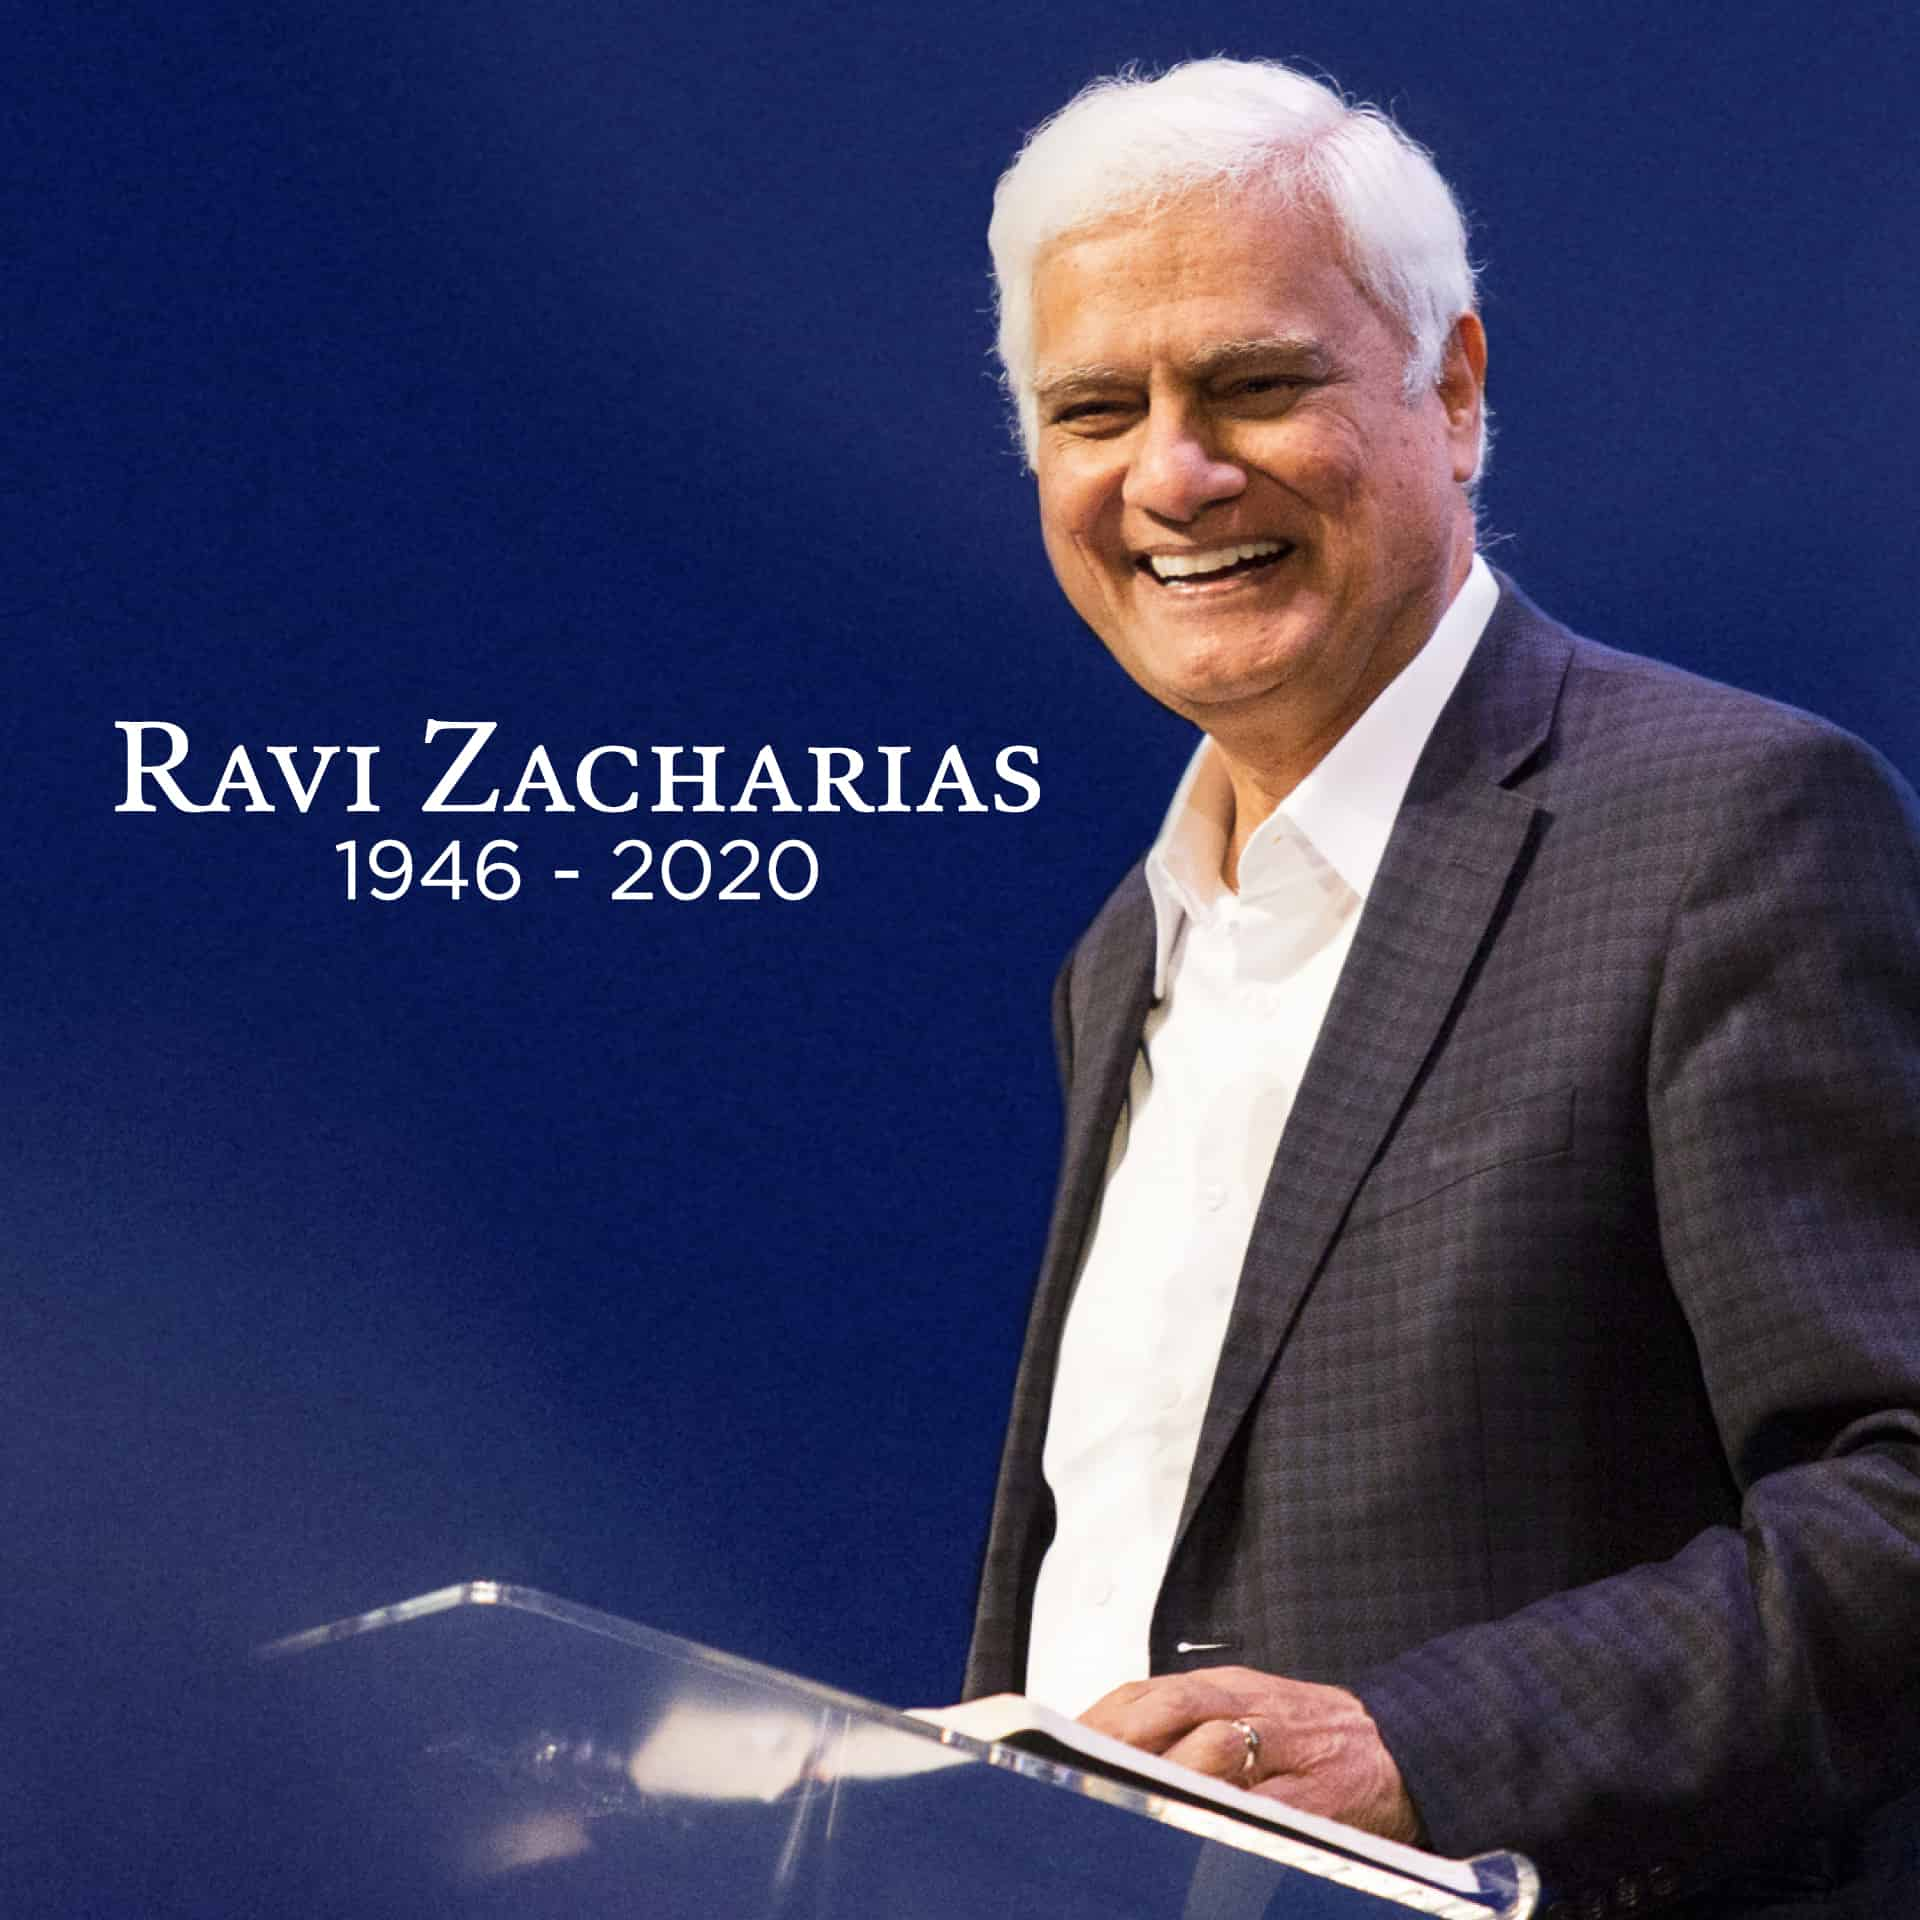 Raci Zacharias standing behind a podium. Birth and death year displayed